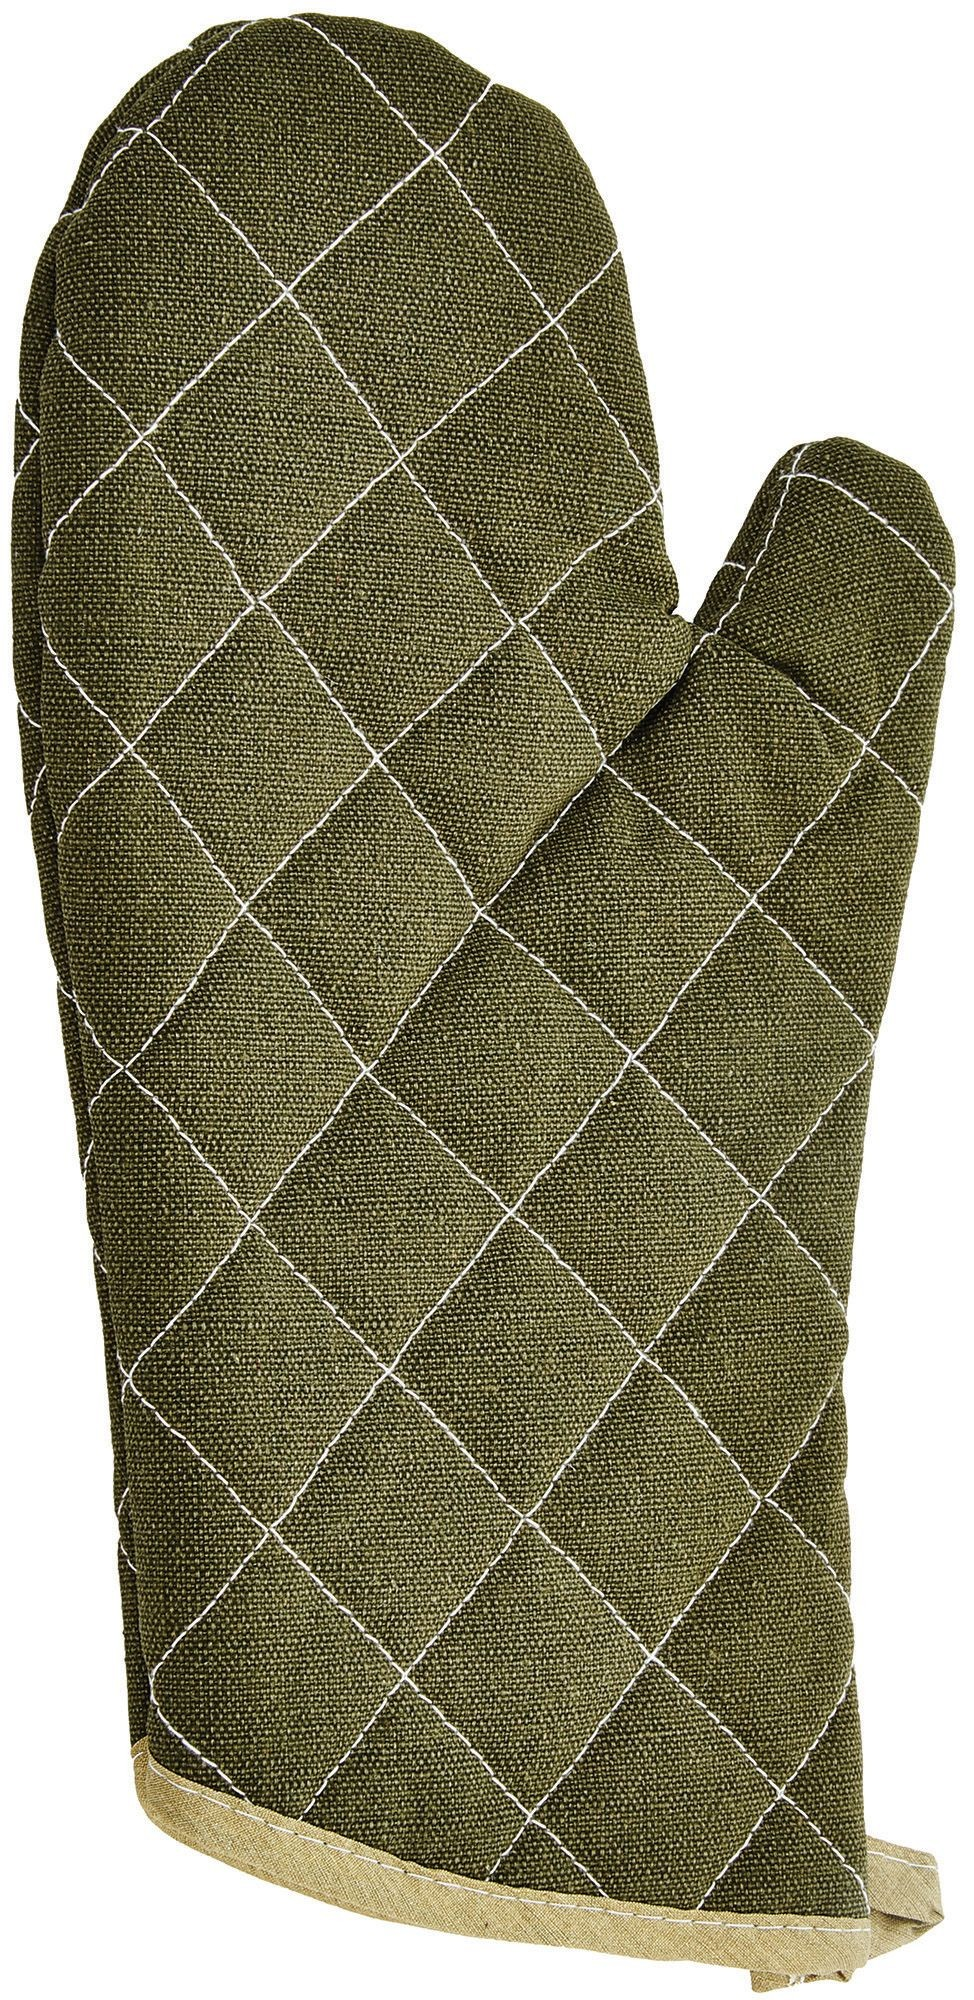 Winco OMF-13 Oven Mitt, Flame Resistant Up to 400°F 13